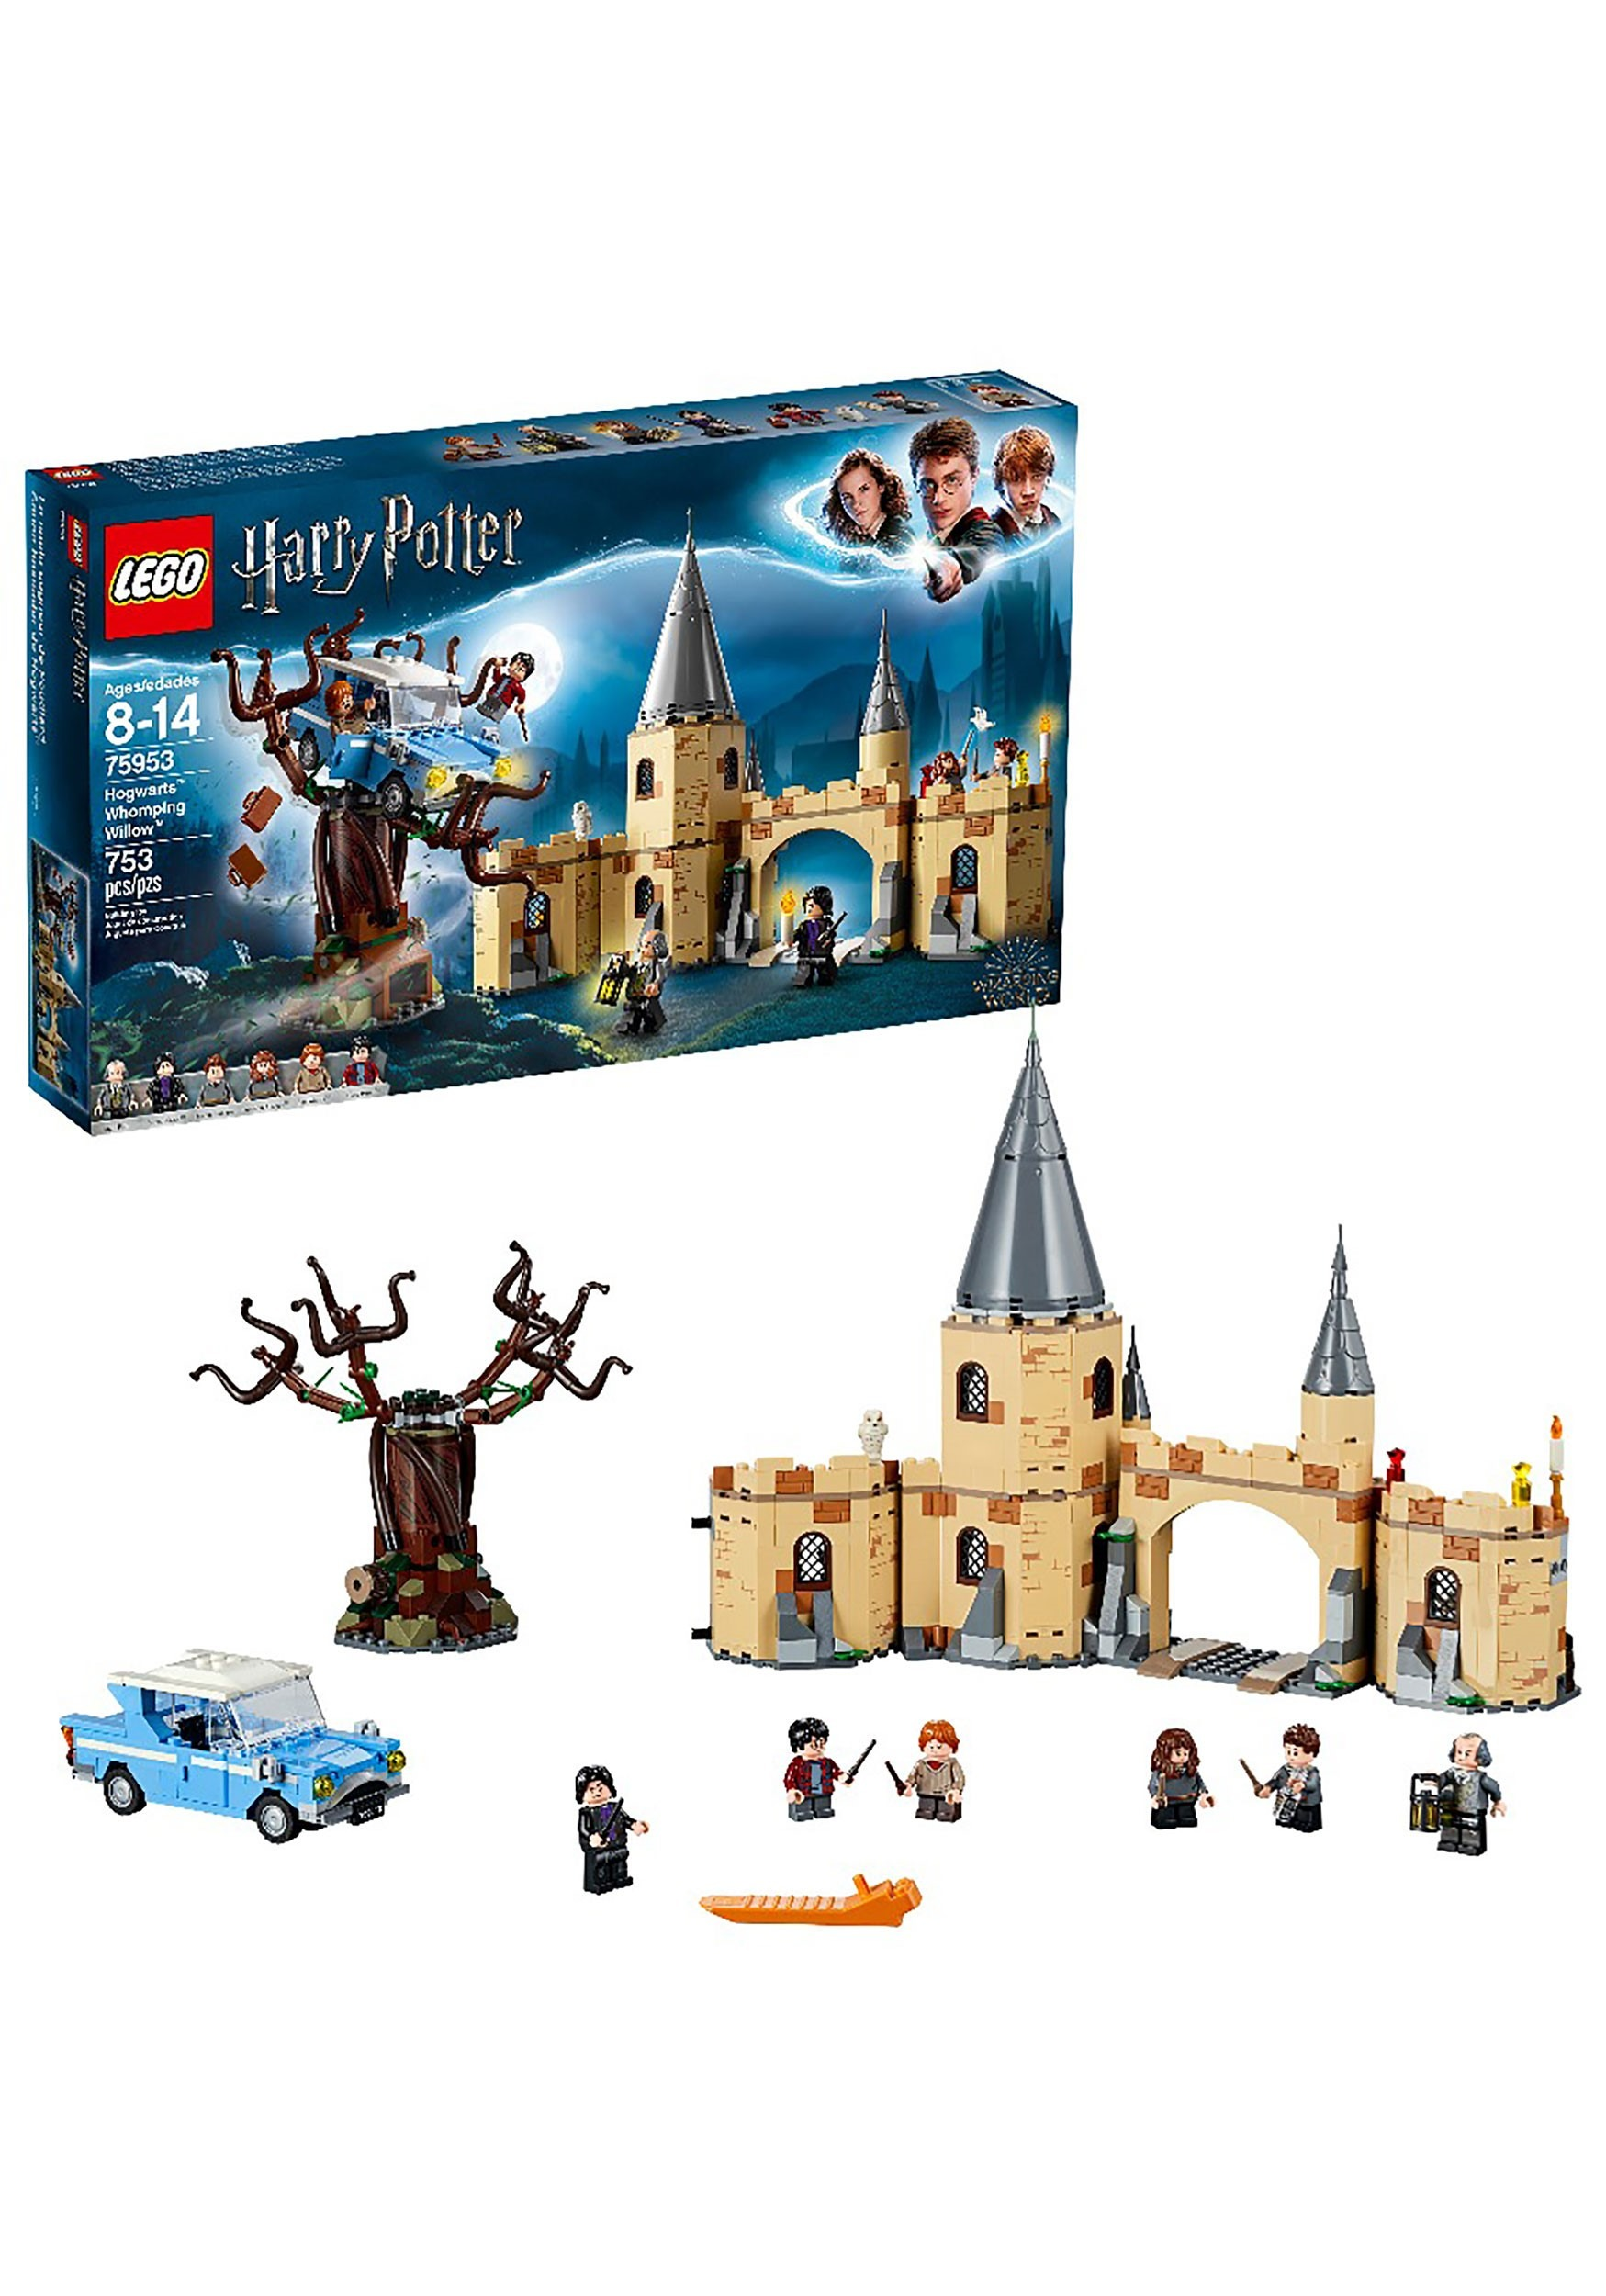 Harry Potter LEGO Hogwarts Whomping Willow